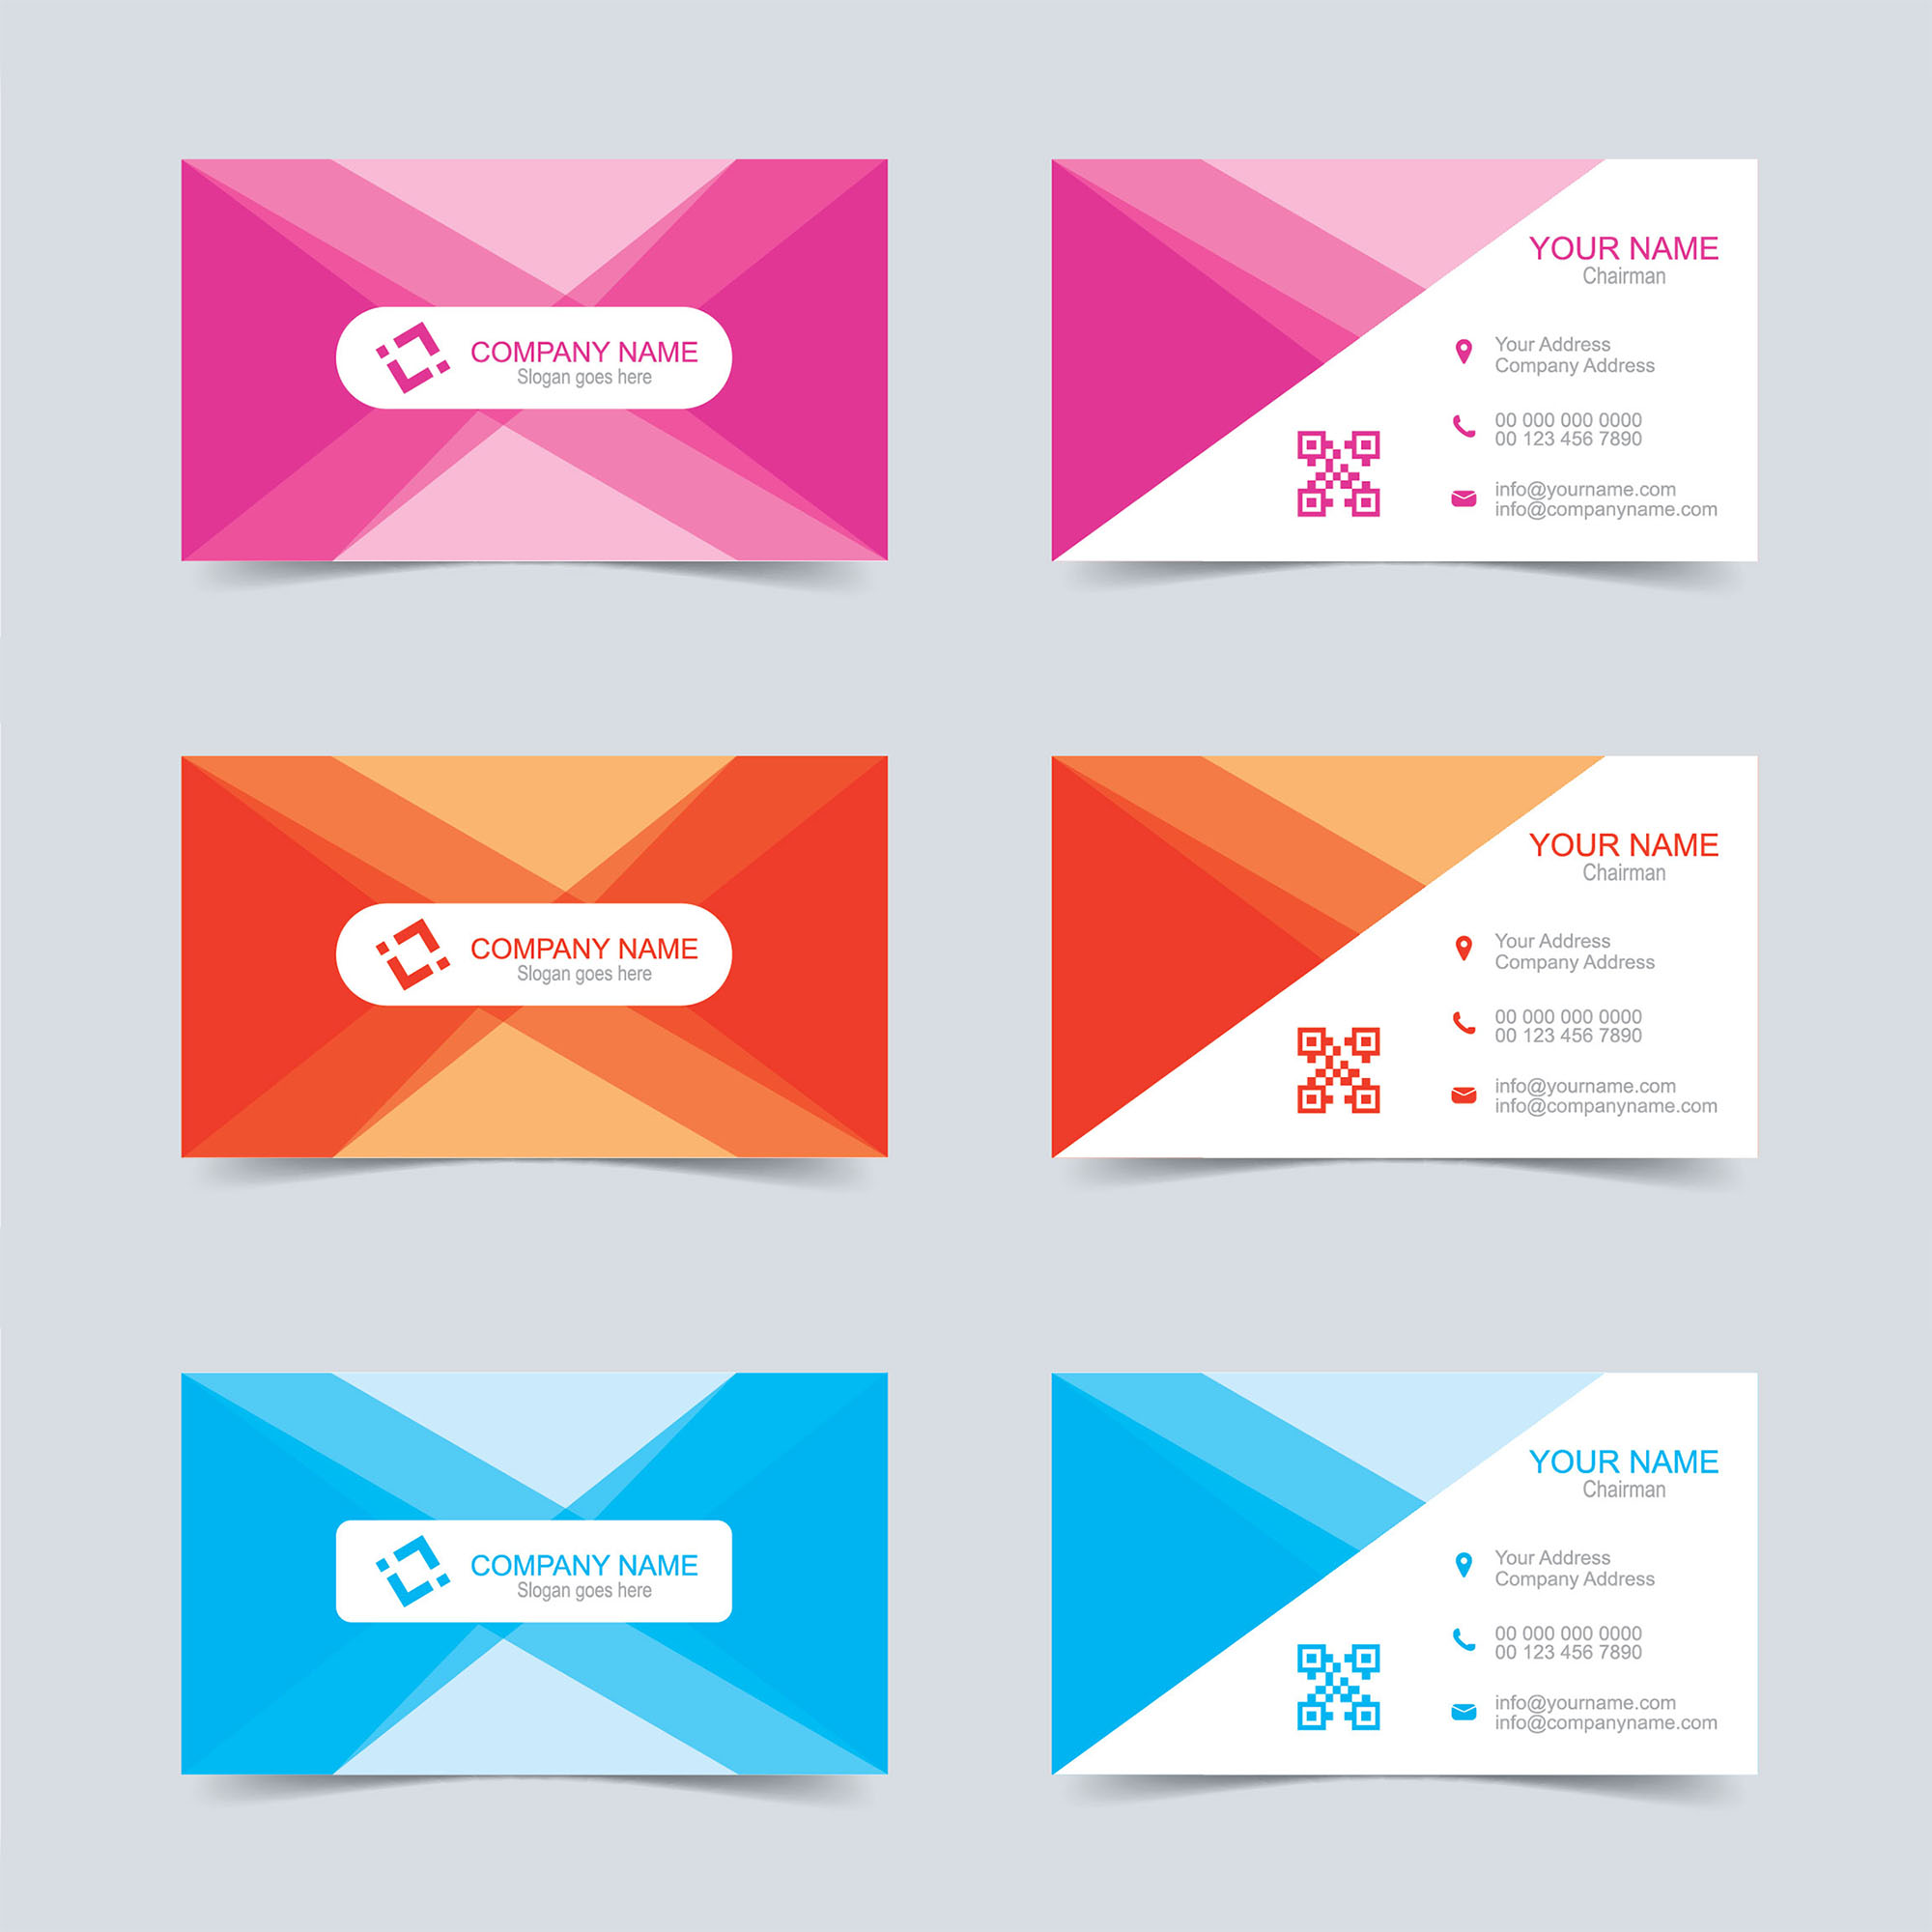 Vector Business Card Template Free Download Wisxicom - Business card design templates free